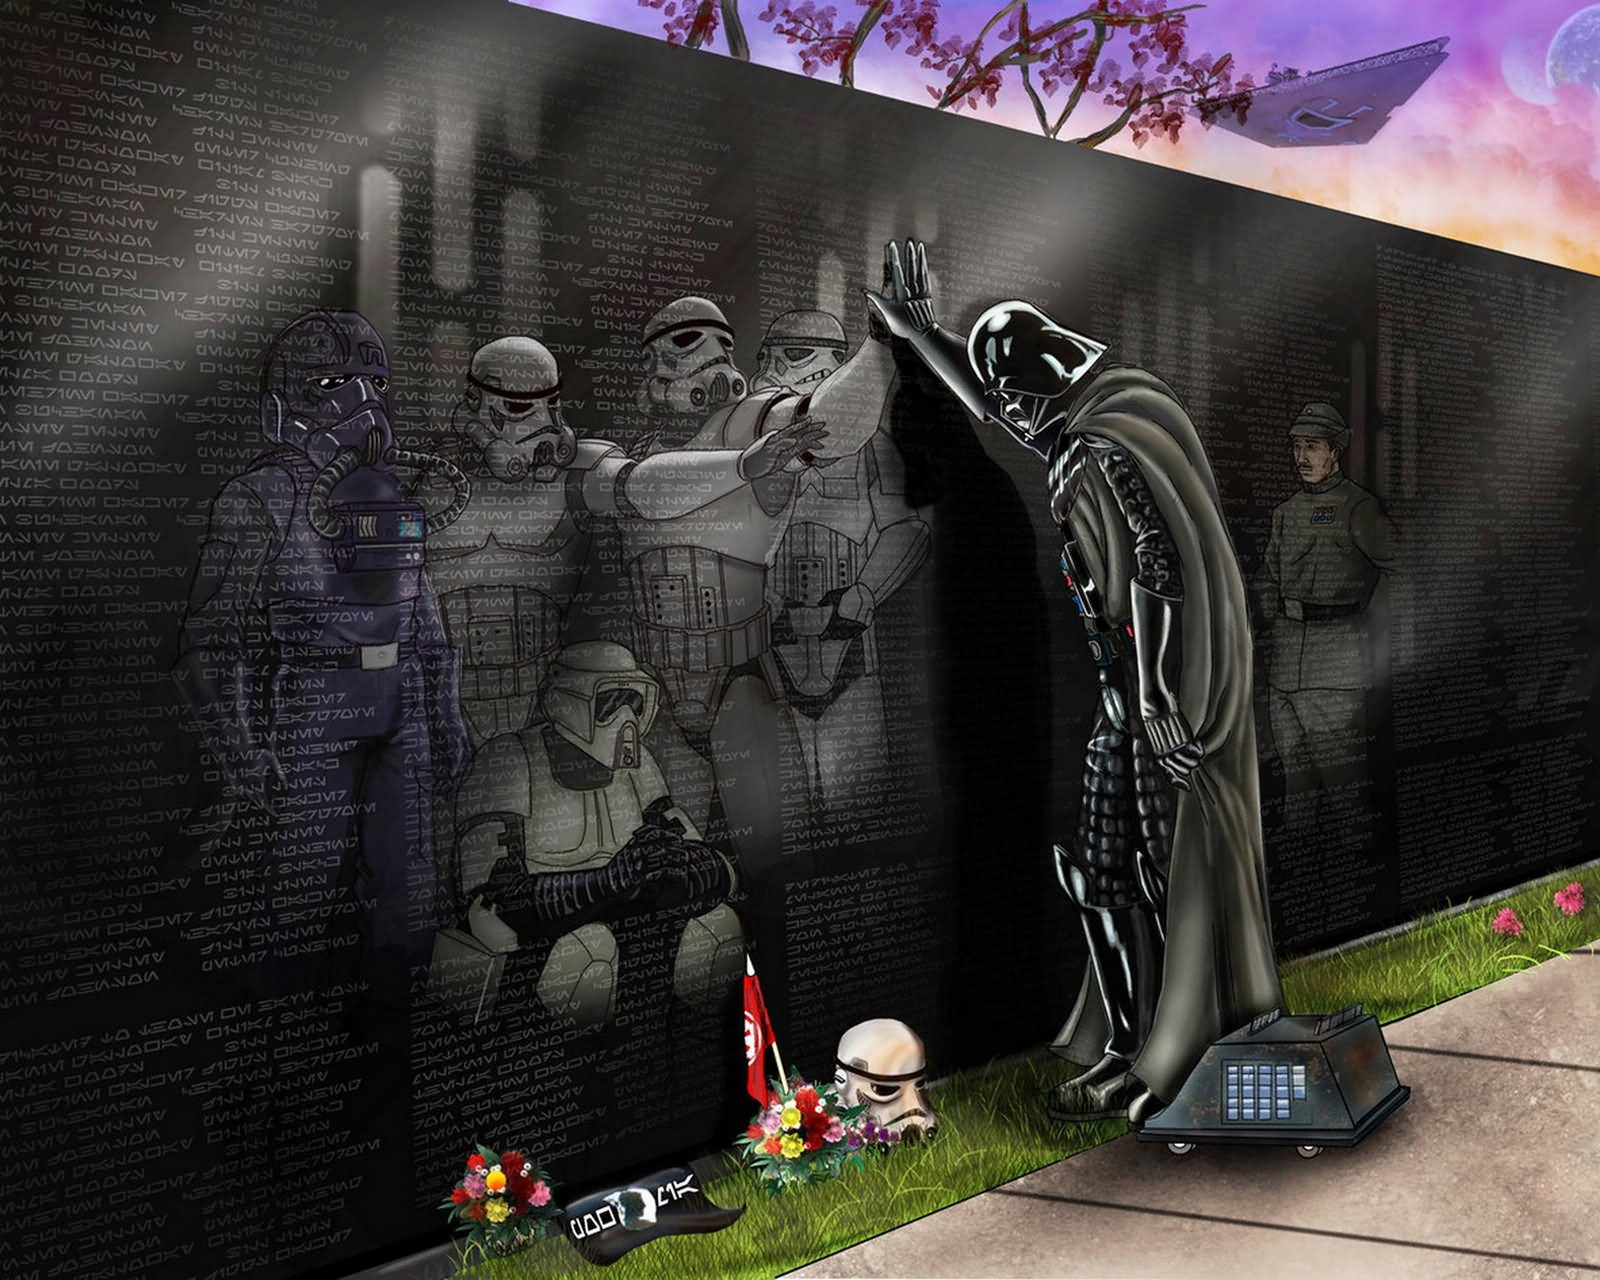 Darth vader funny memorial wall star wars image - Star wars quotes wallpaper ...